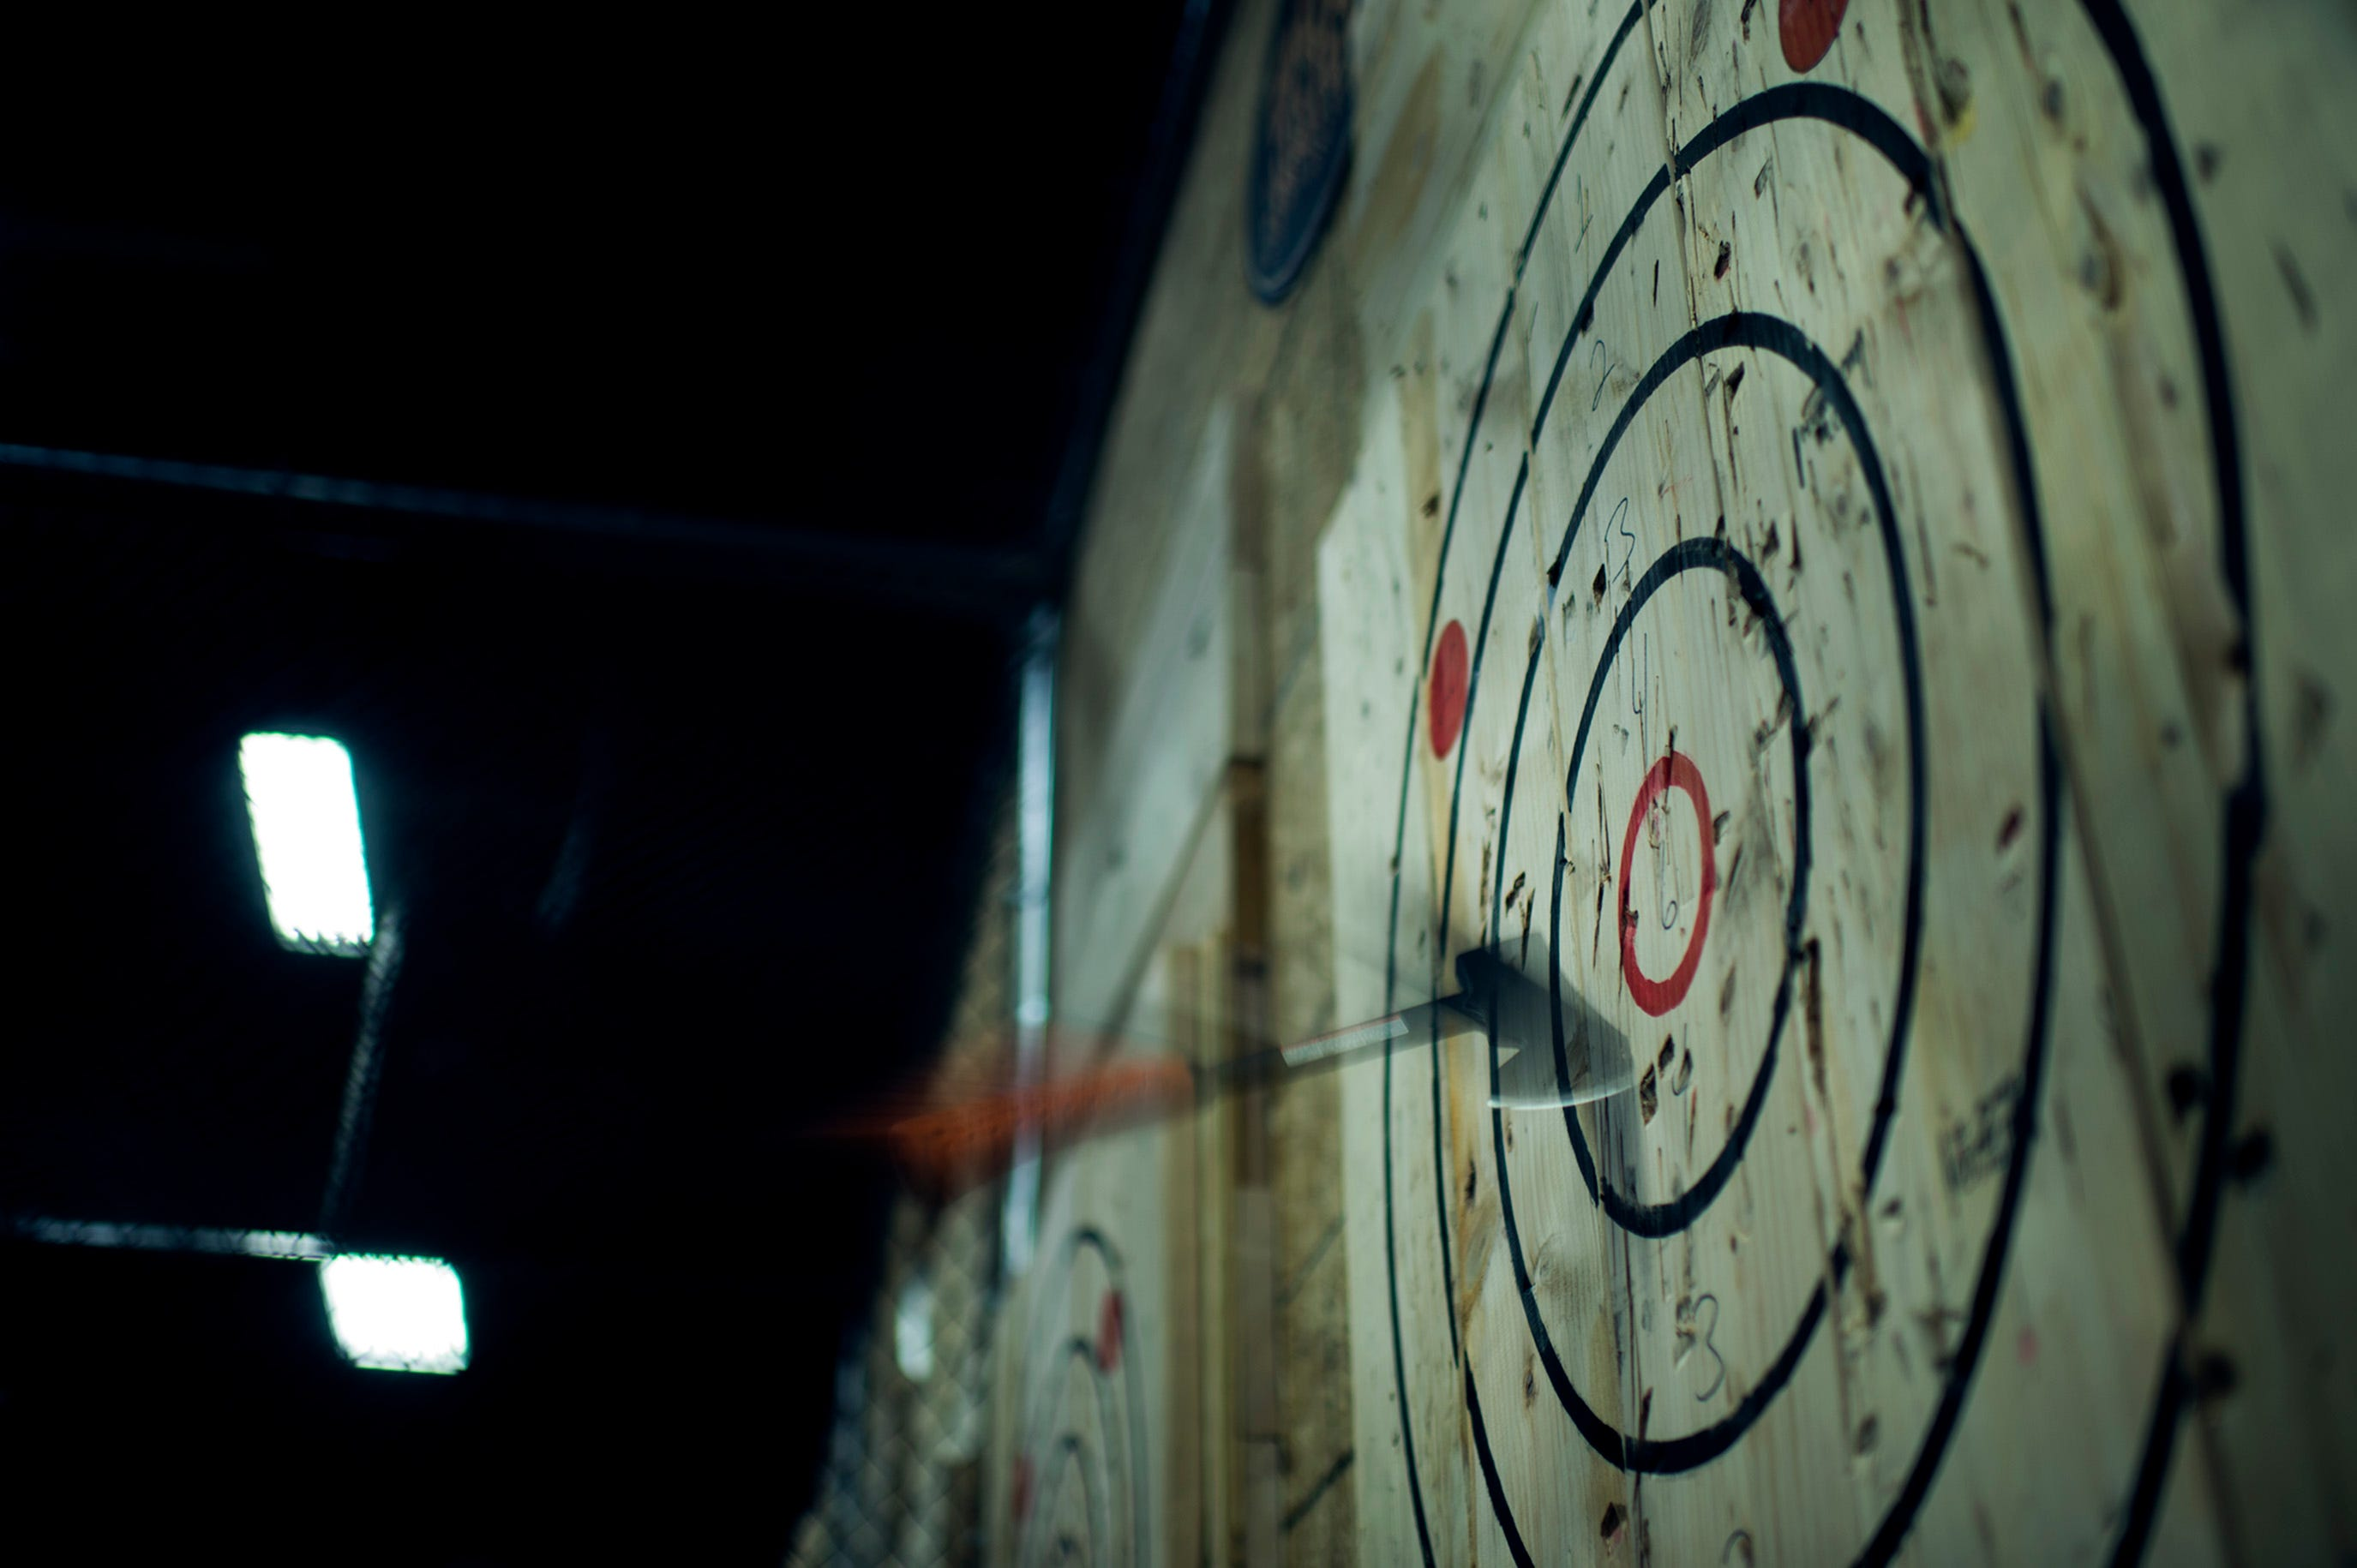 Escape 605 to open downtown, feature axe-throwing (yes, you read that right) | Argus Leader